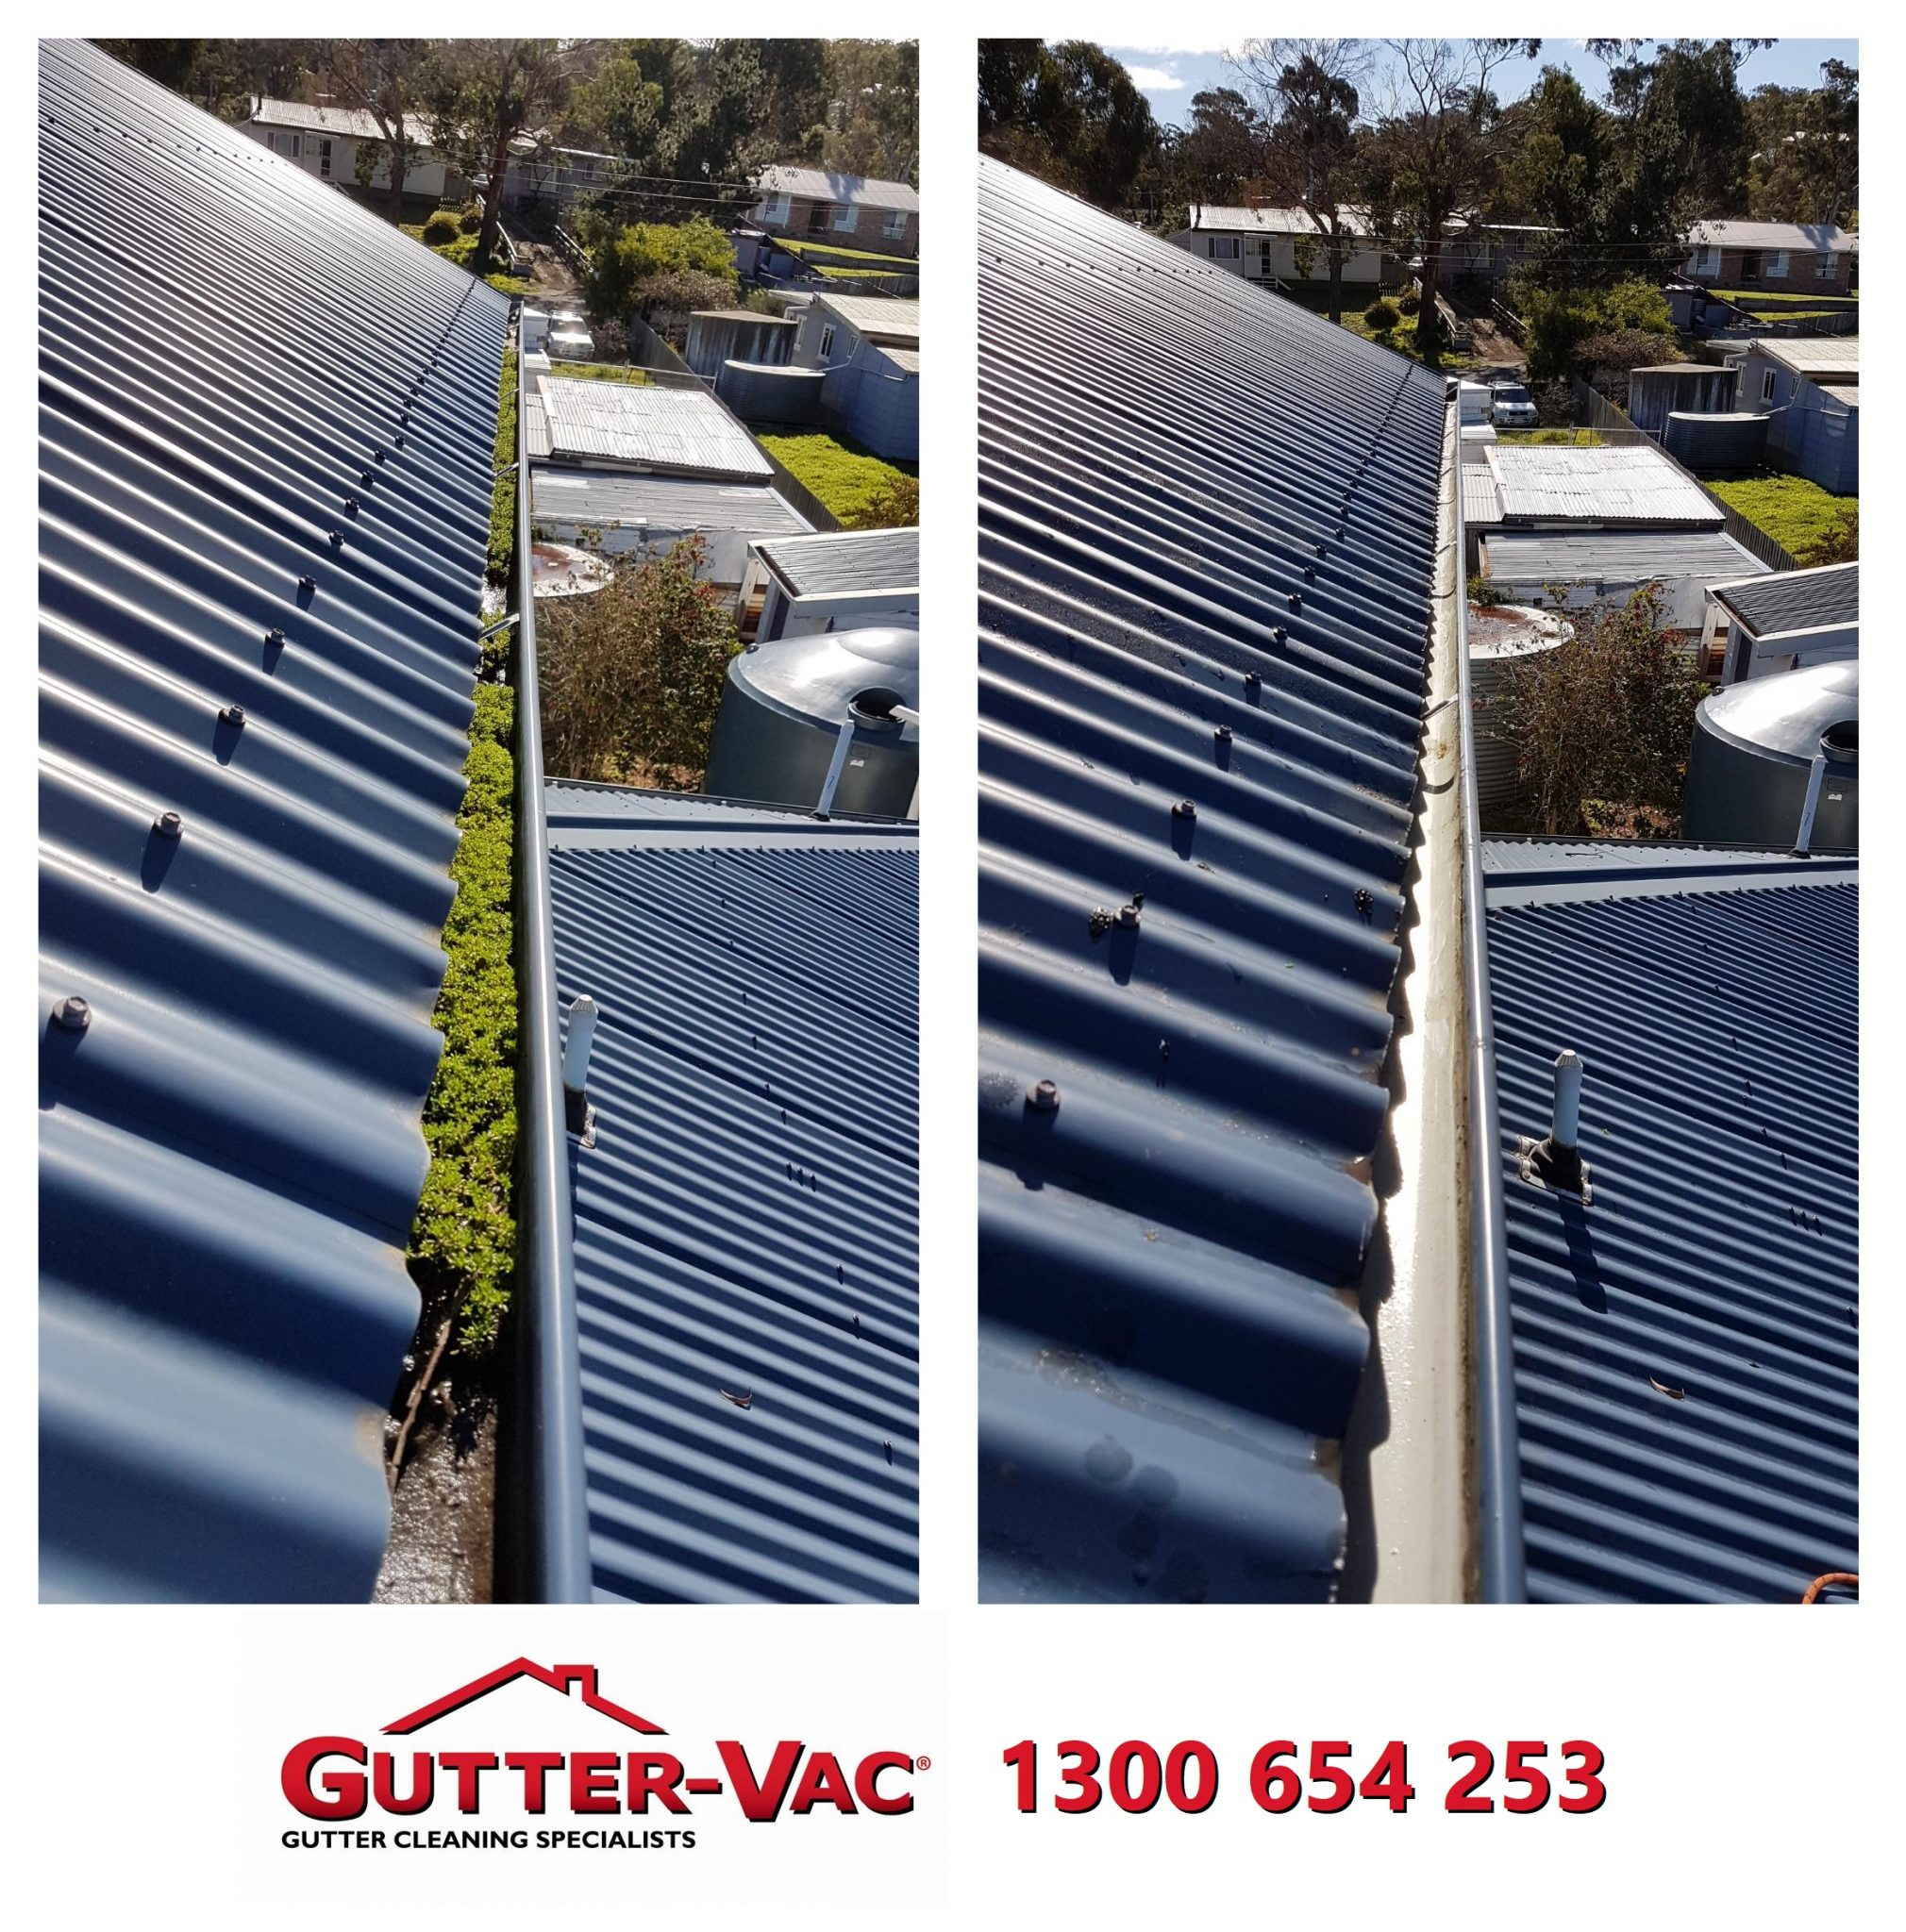 Minimal Trees or No Trees Around?… A Gutter Clean Is a Good Idea